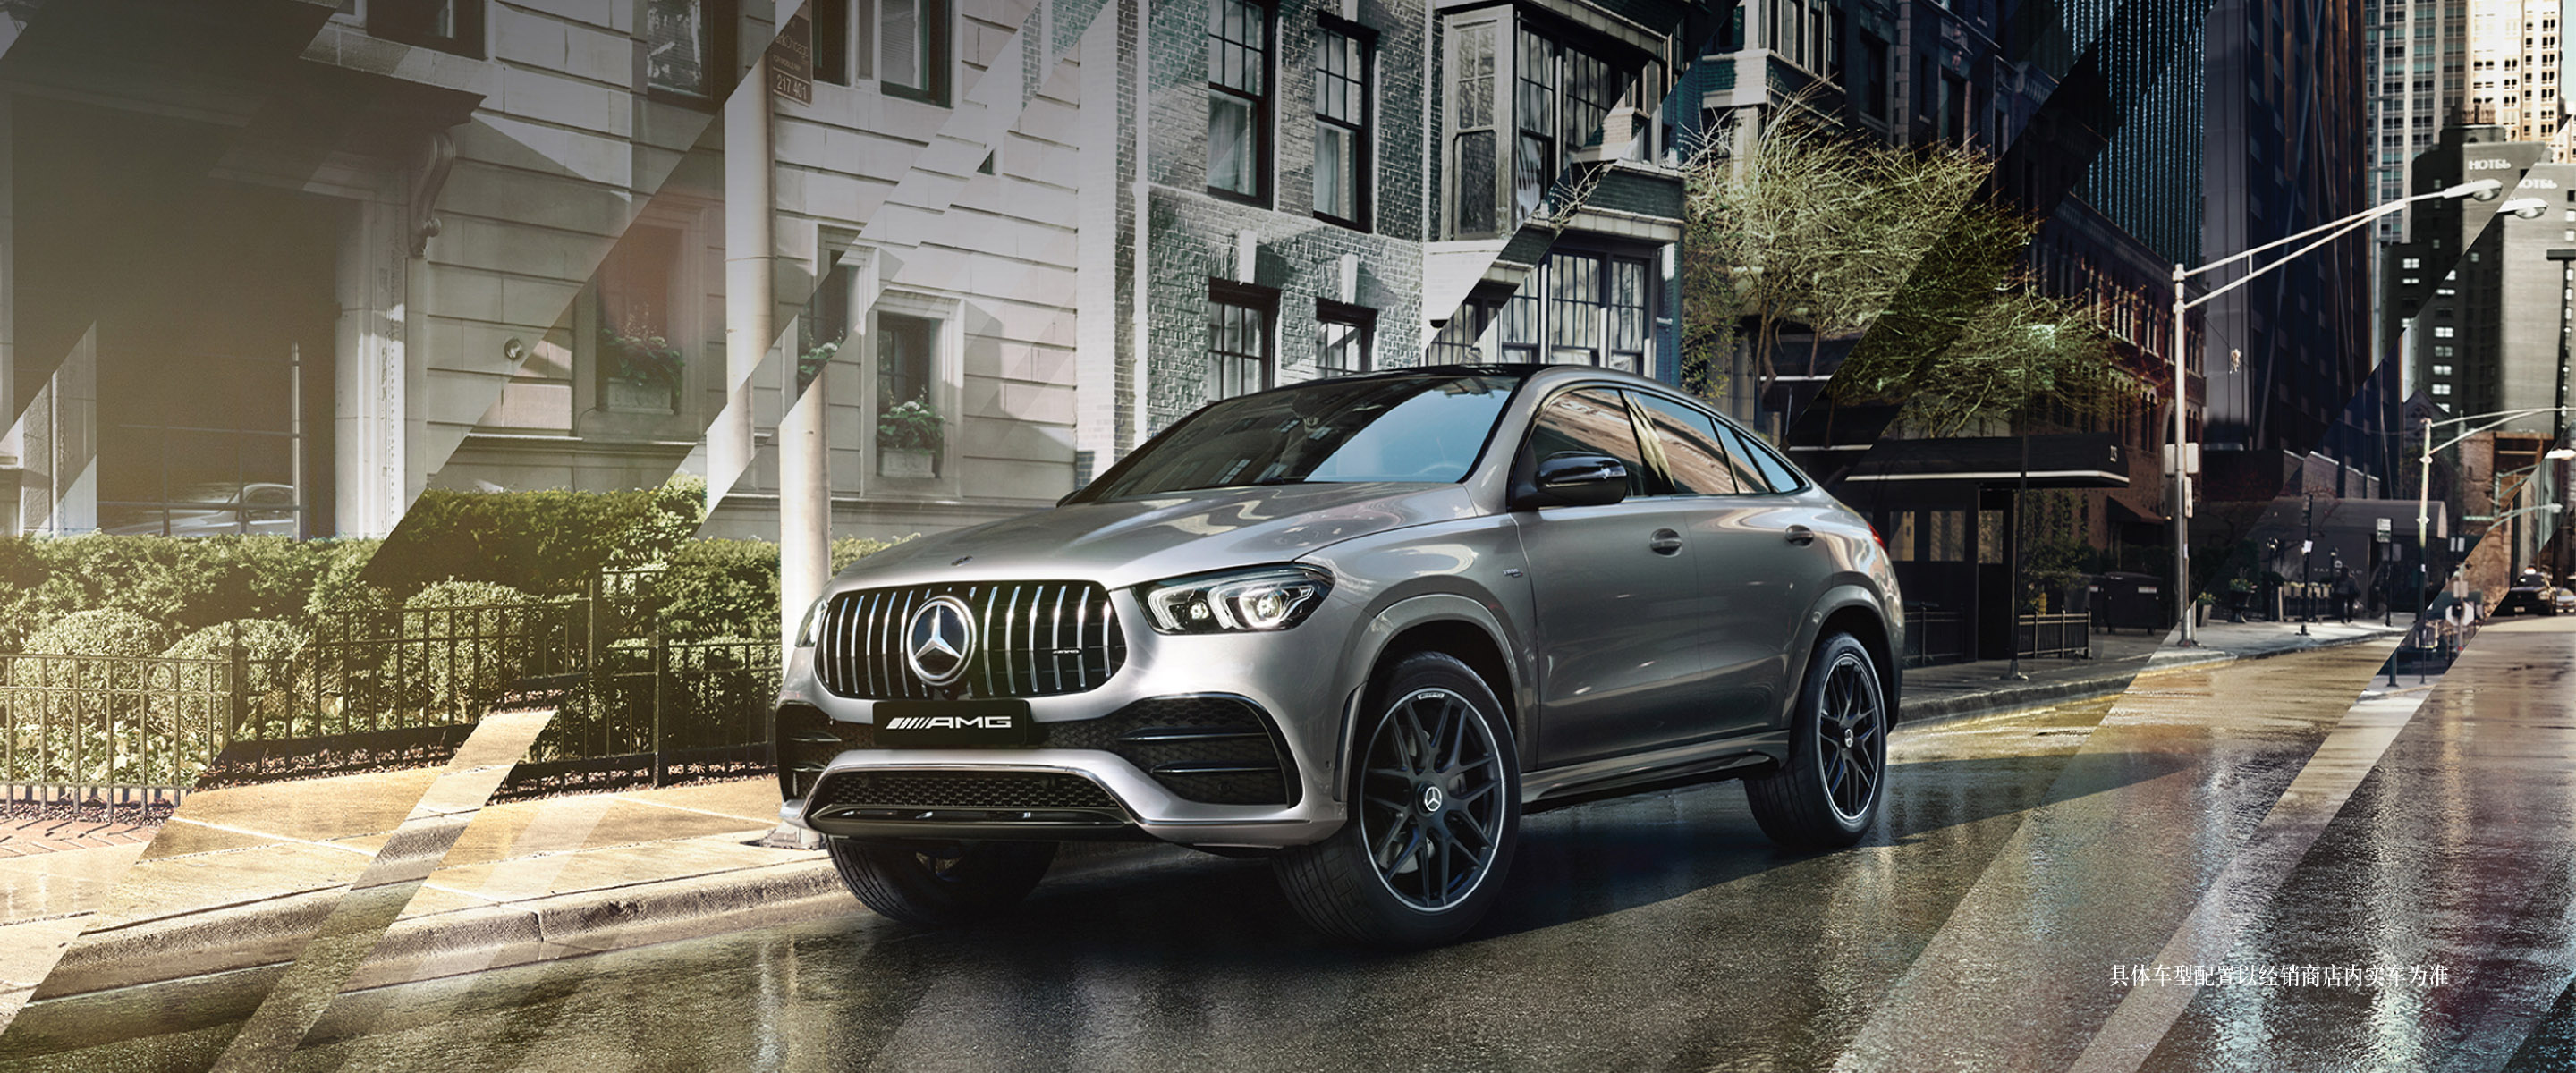 AMG GLE 53 4MATIC+ Coupe